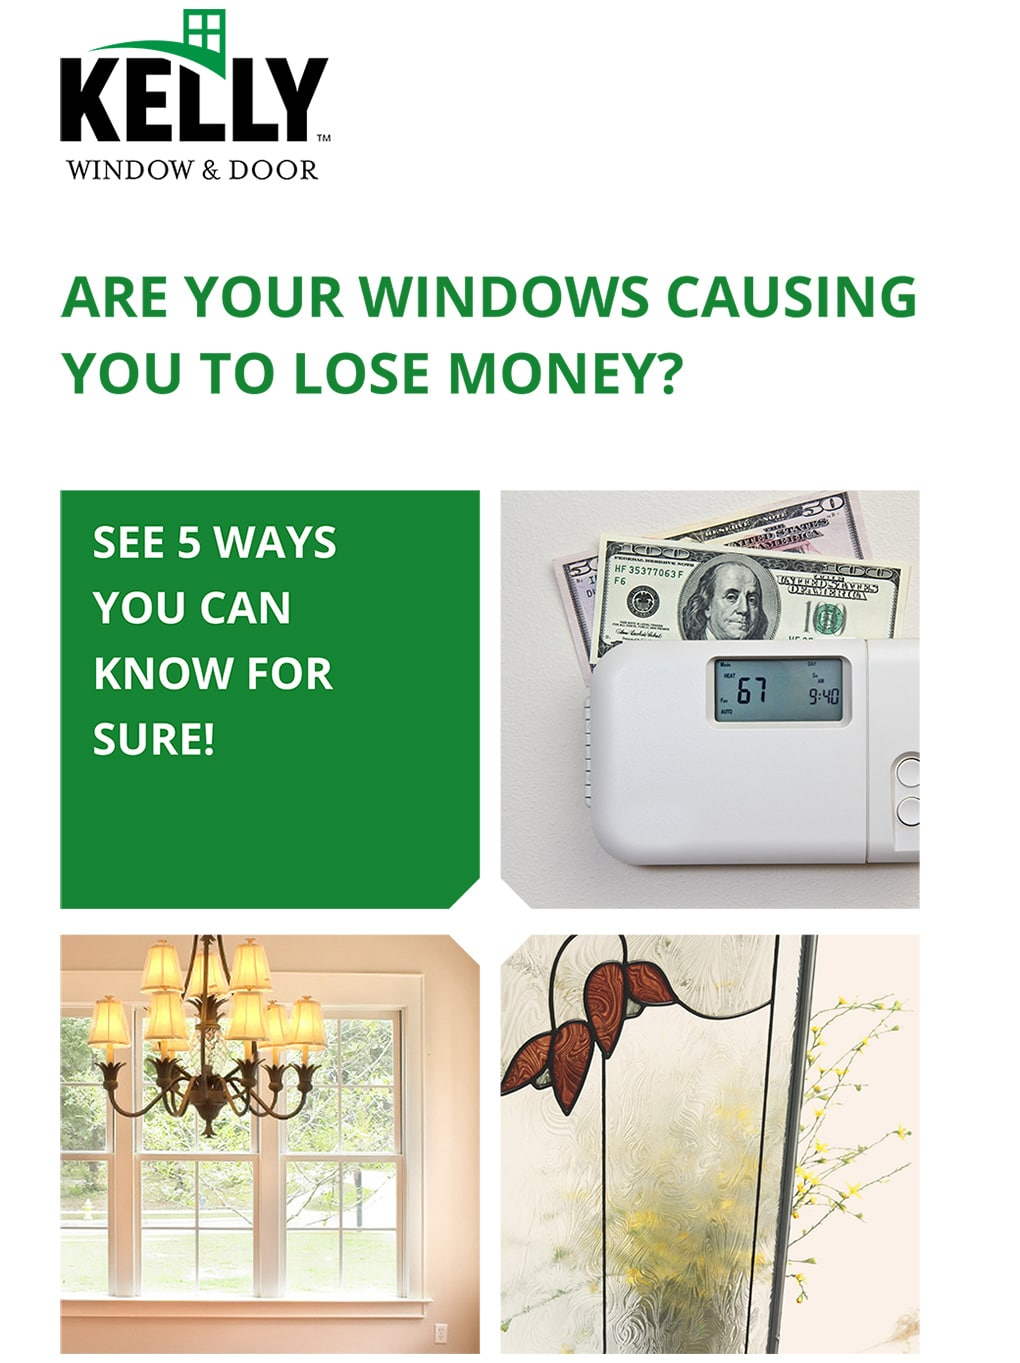 Are Your Windows Causing You To Lose Money?